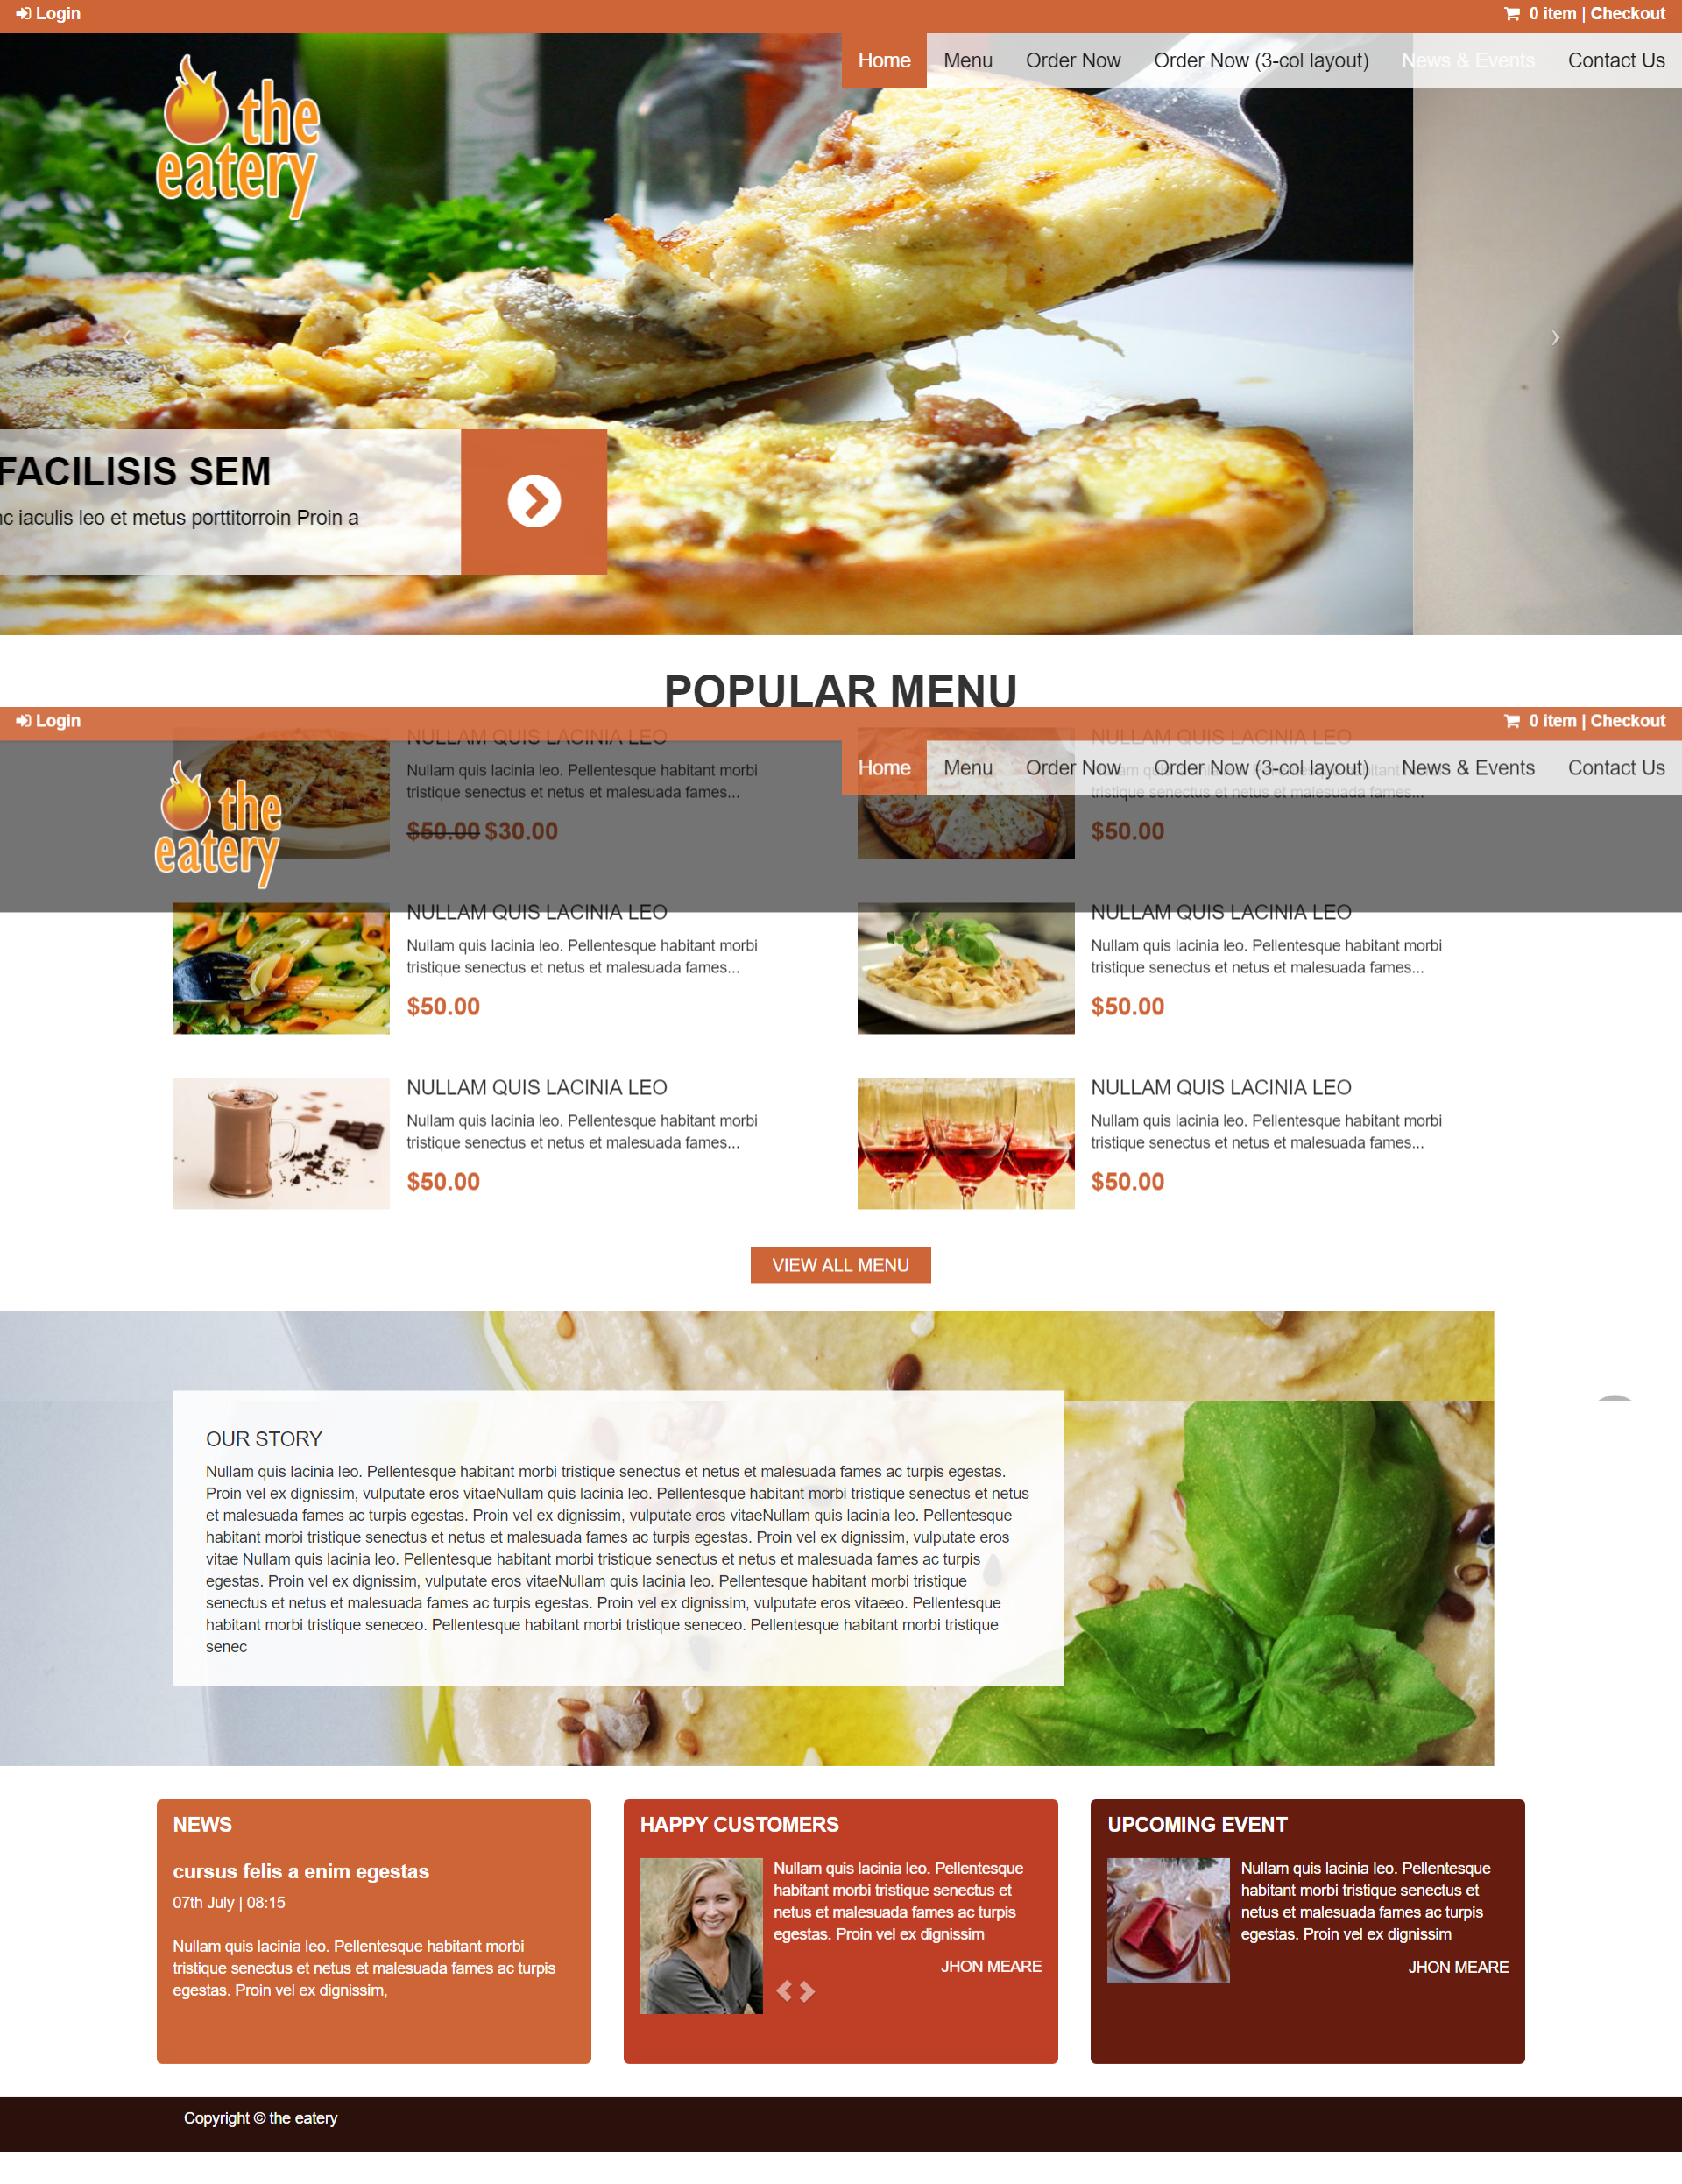 The Eatery Pizza & Italian Dining: Desktop View